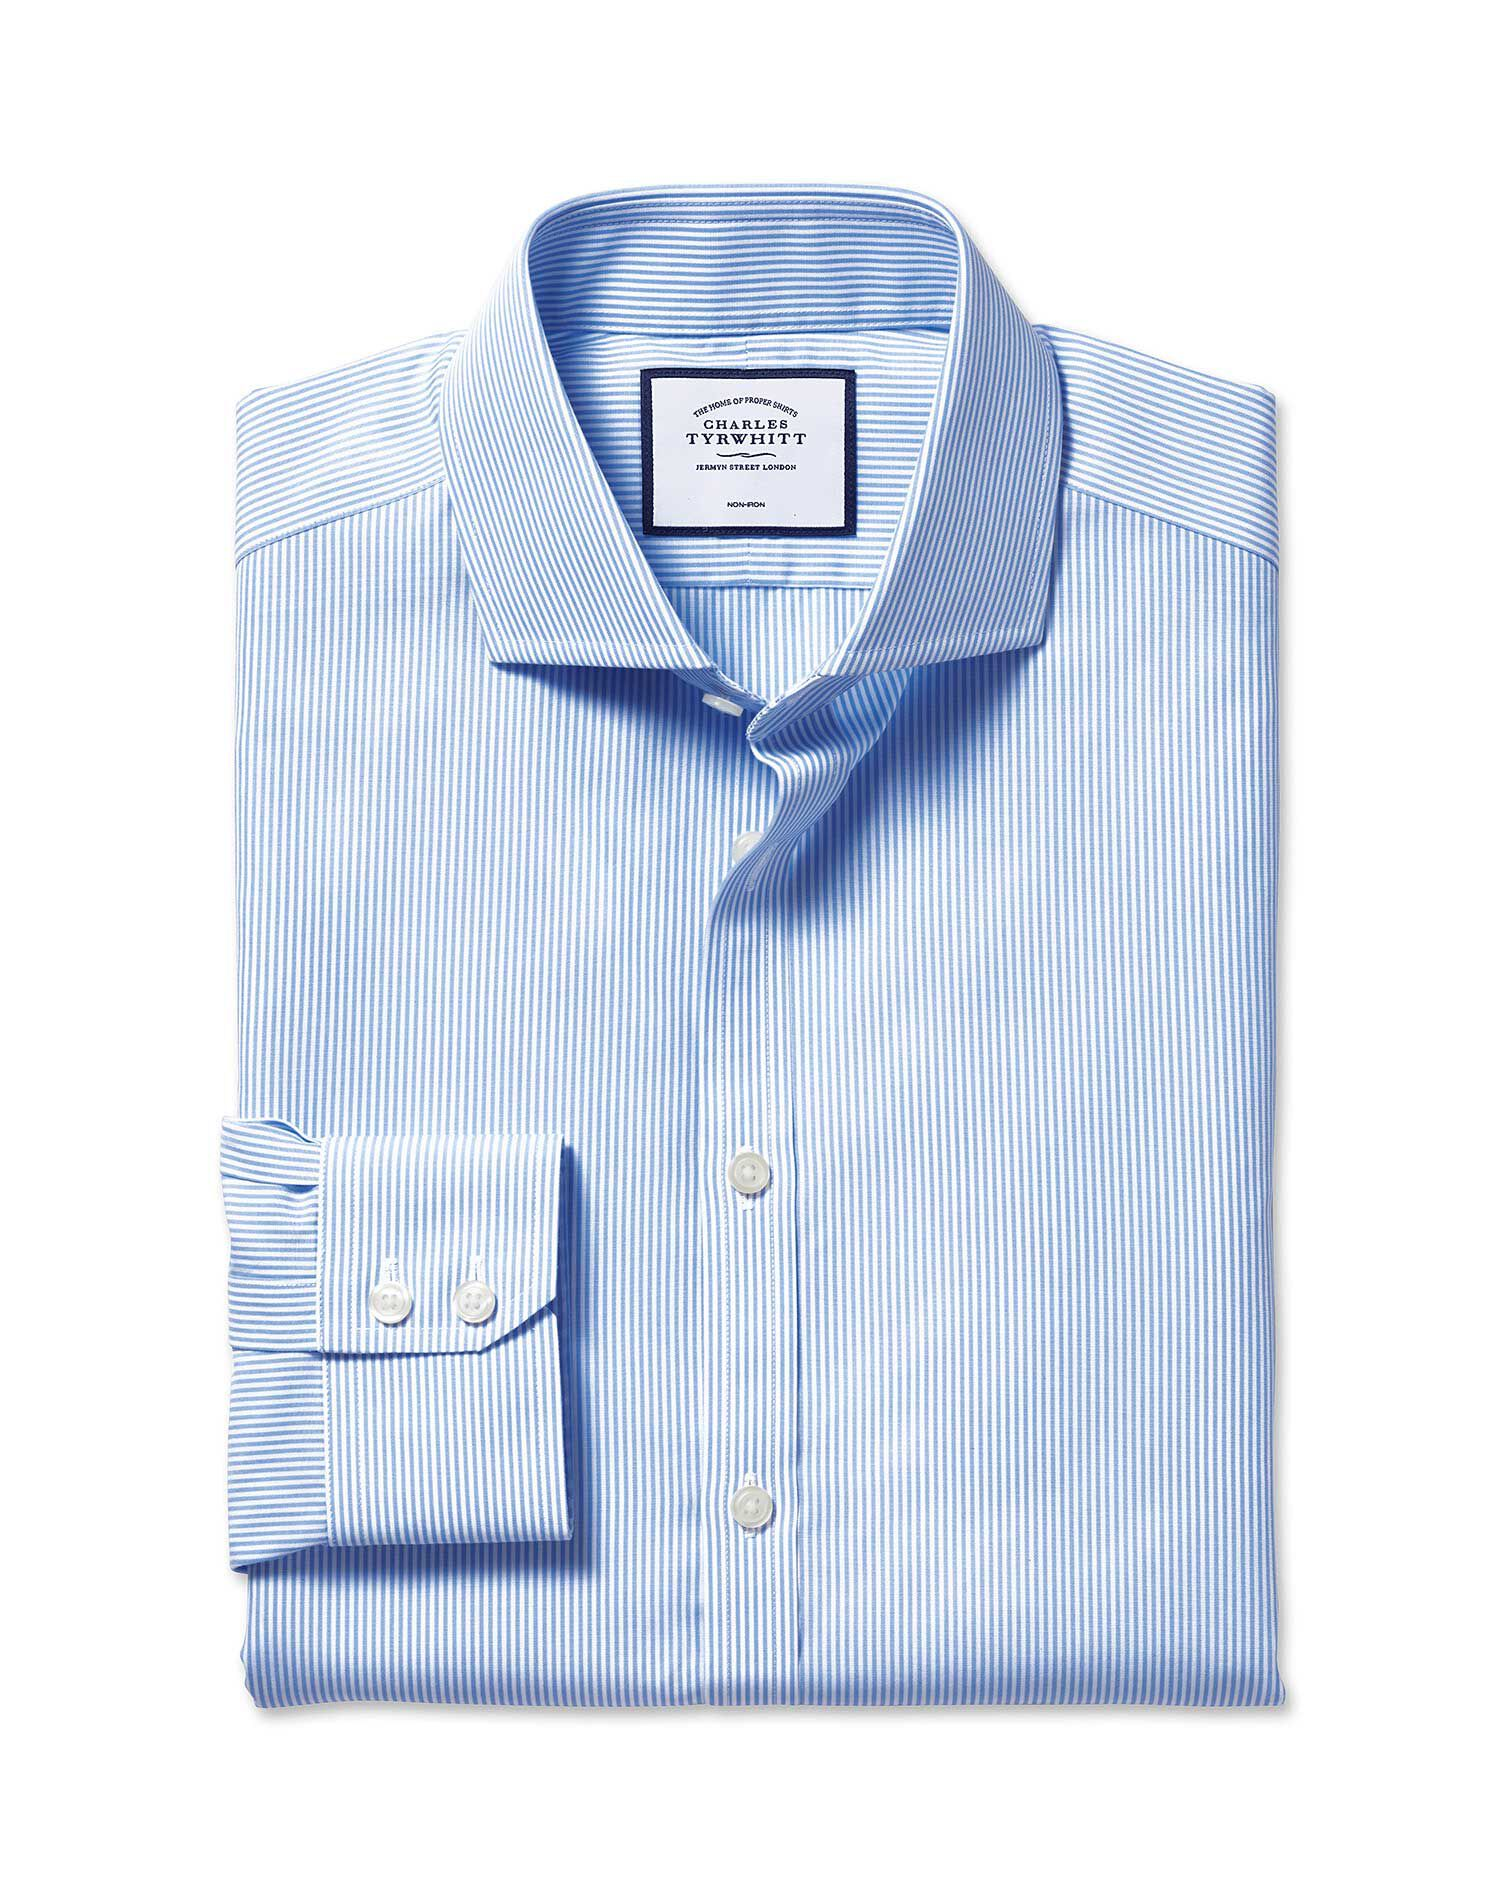 Slim Fit Cutaway Non-Iron Bengal Stripe Sky Blue Cotton Formal Shirt Single Cuff Size 16/33 by Charl